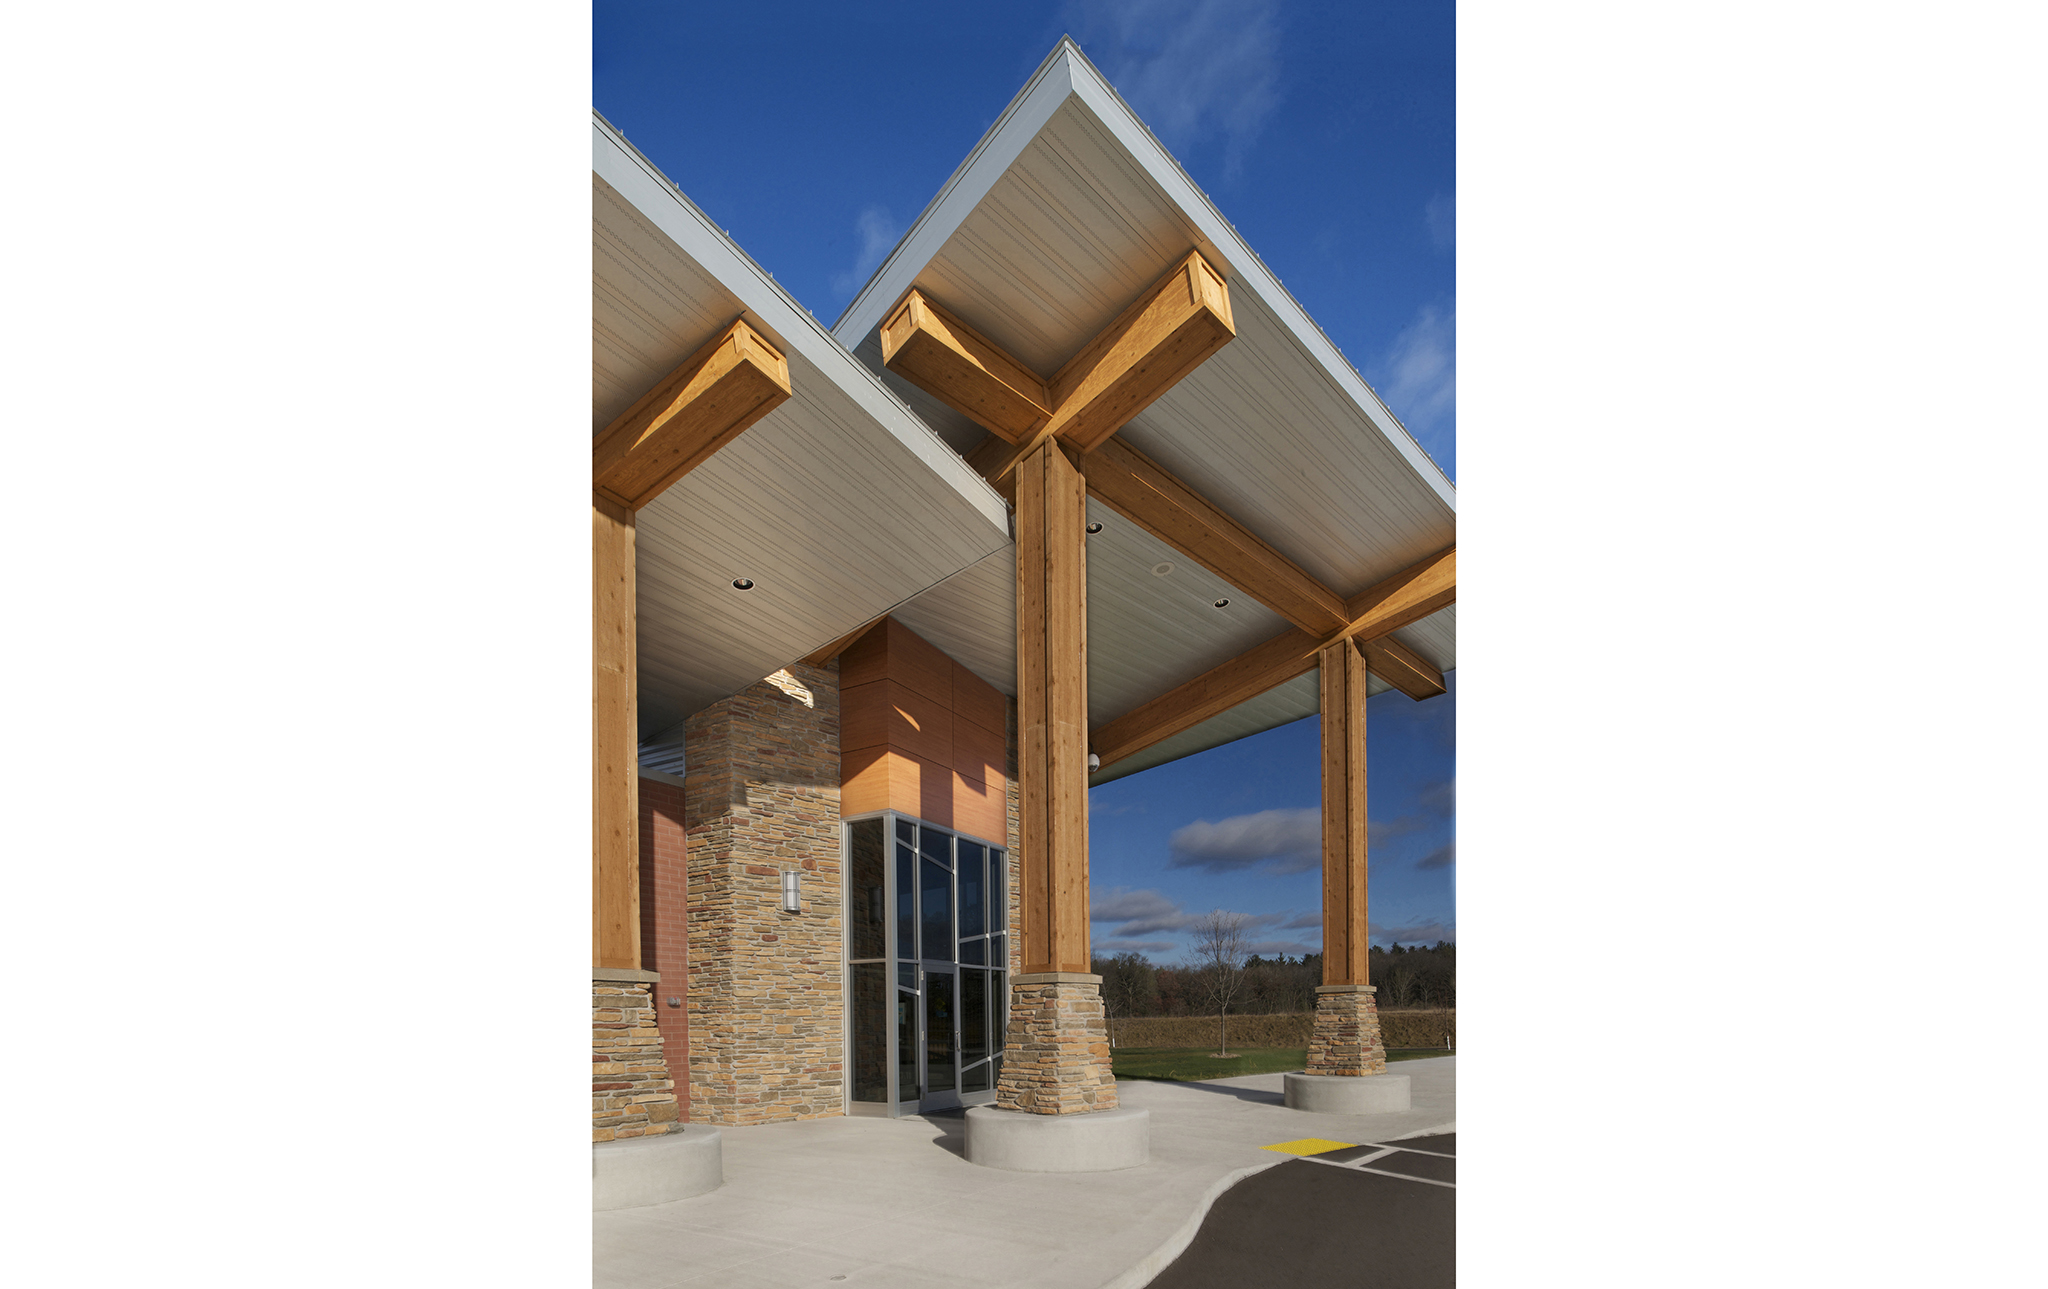 5_Menominee-Regional-Public-Transit-Center